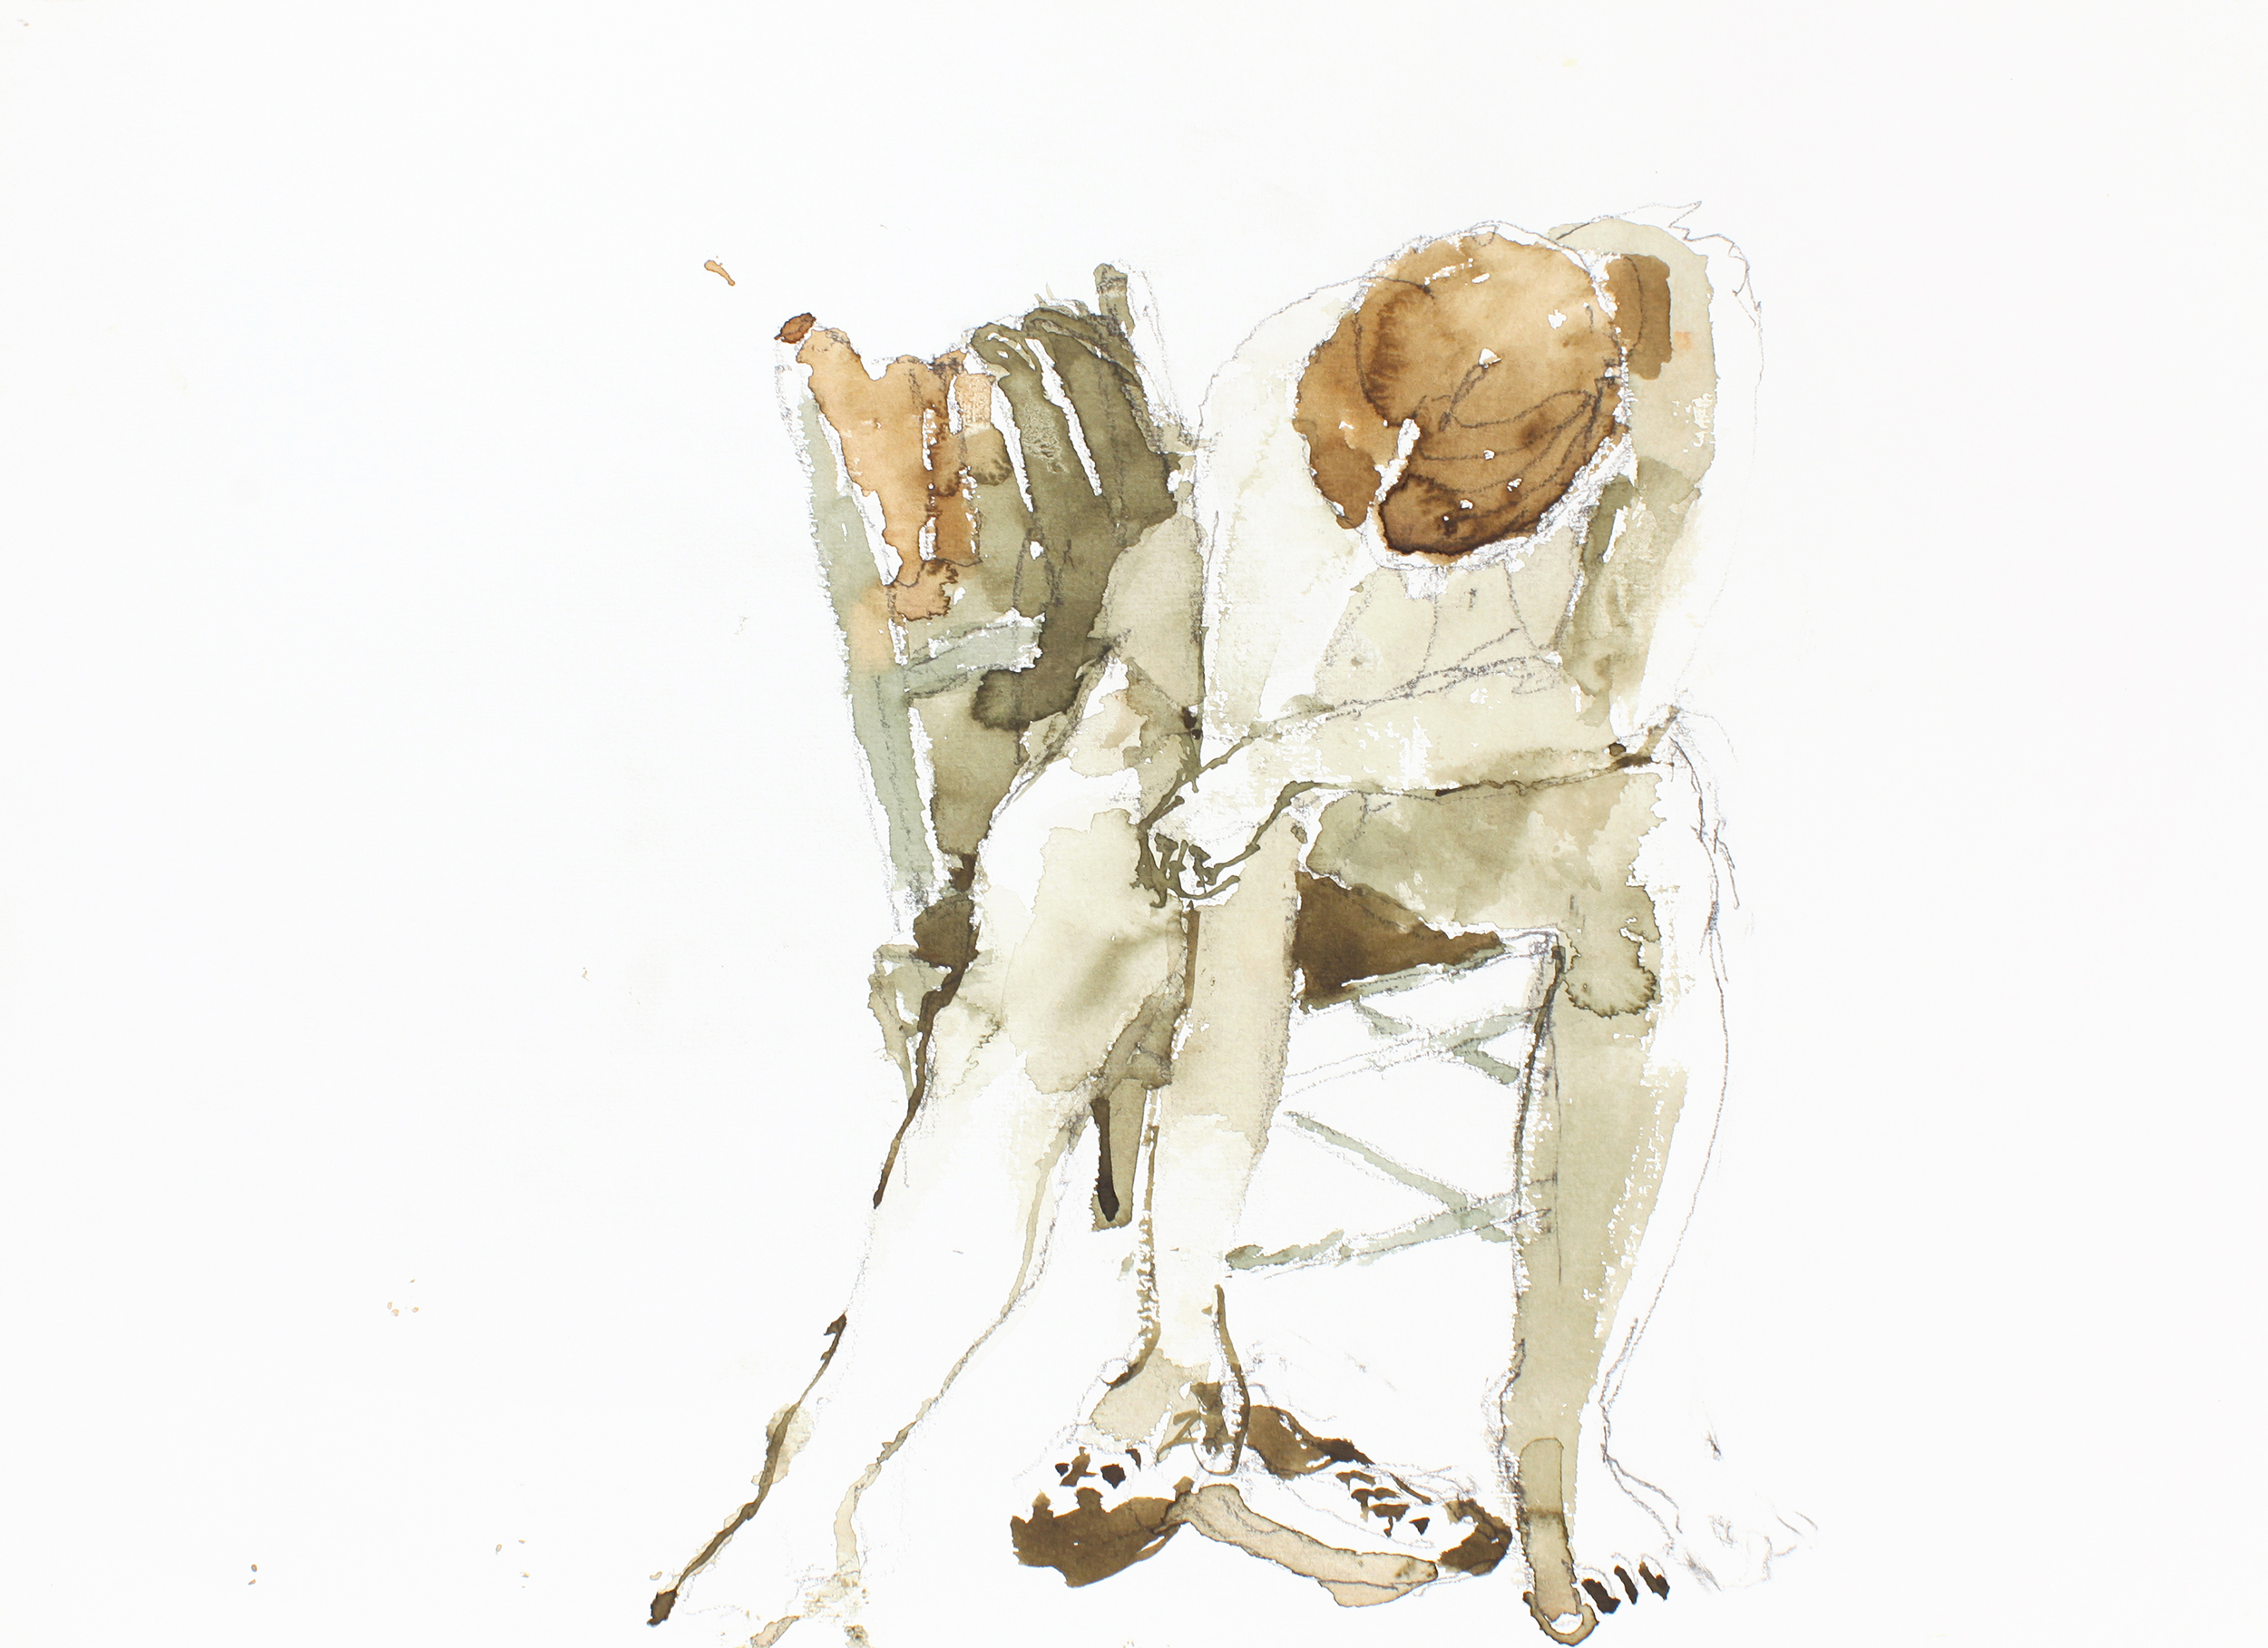 Seated Nude Holding Shoes  2005 watercolour and pencil on paper 11x15in WPF064  Whether painting representational or abstract images, John Fox always drew from the model. The leaning figure contrasts with the slanted chair back while the line of her arm and shoulders parallels the rungs of the chair. Watercolour was a favourite medium because it's difficult to control, but Fox's dynamic tones of green and ochre prove his mastery of his materials.